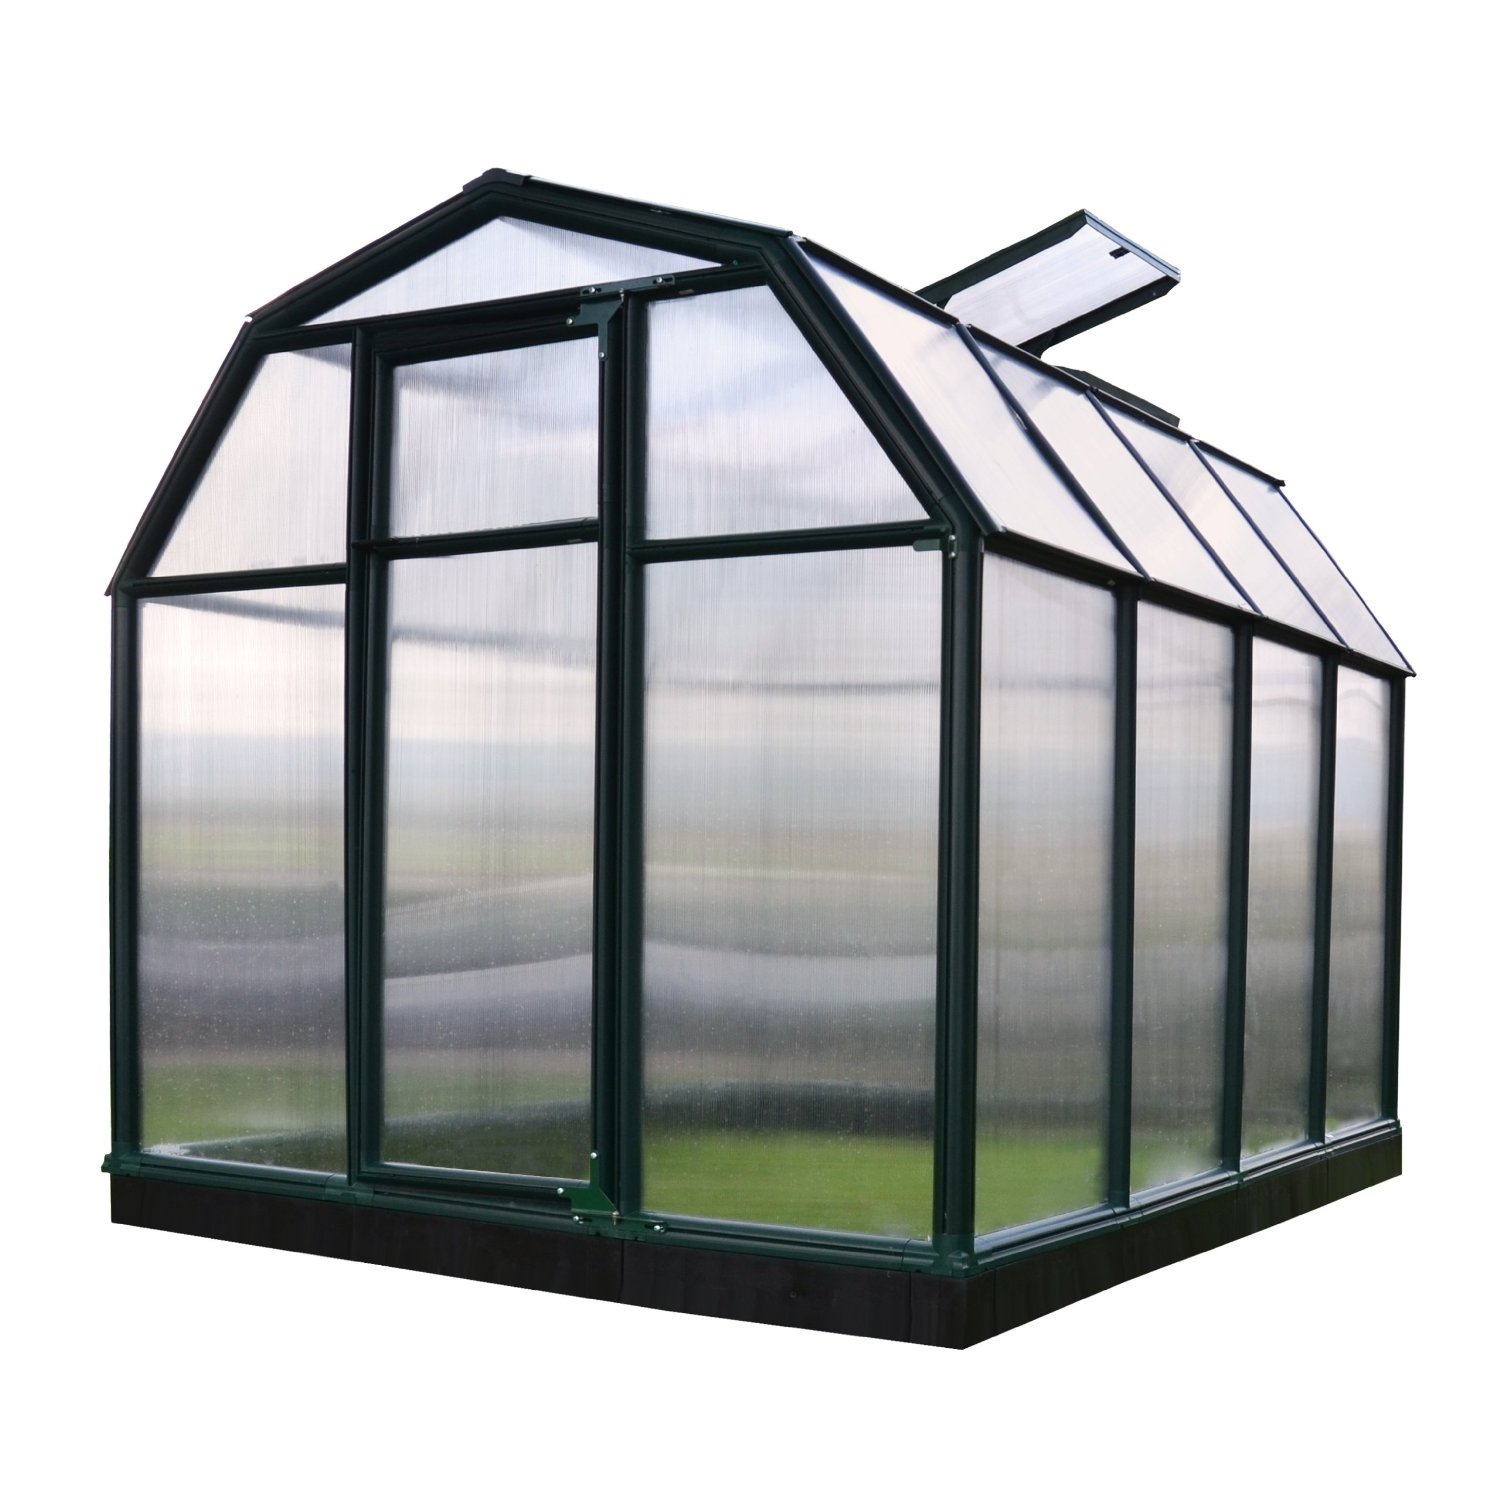 Eco Grow 2 Twin Wall 6' x 8'